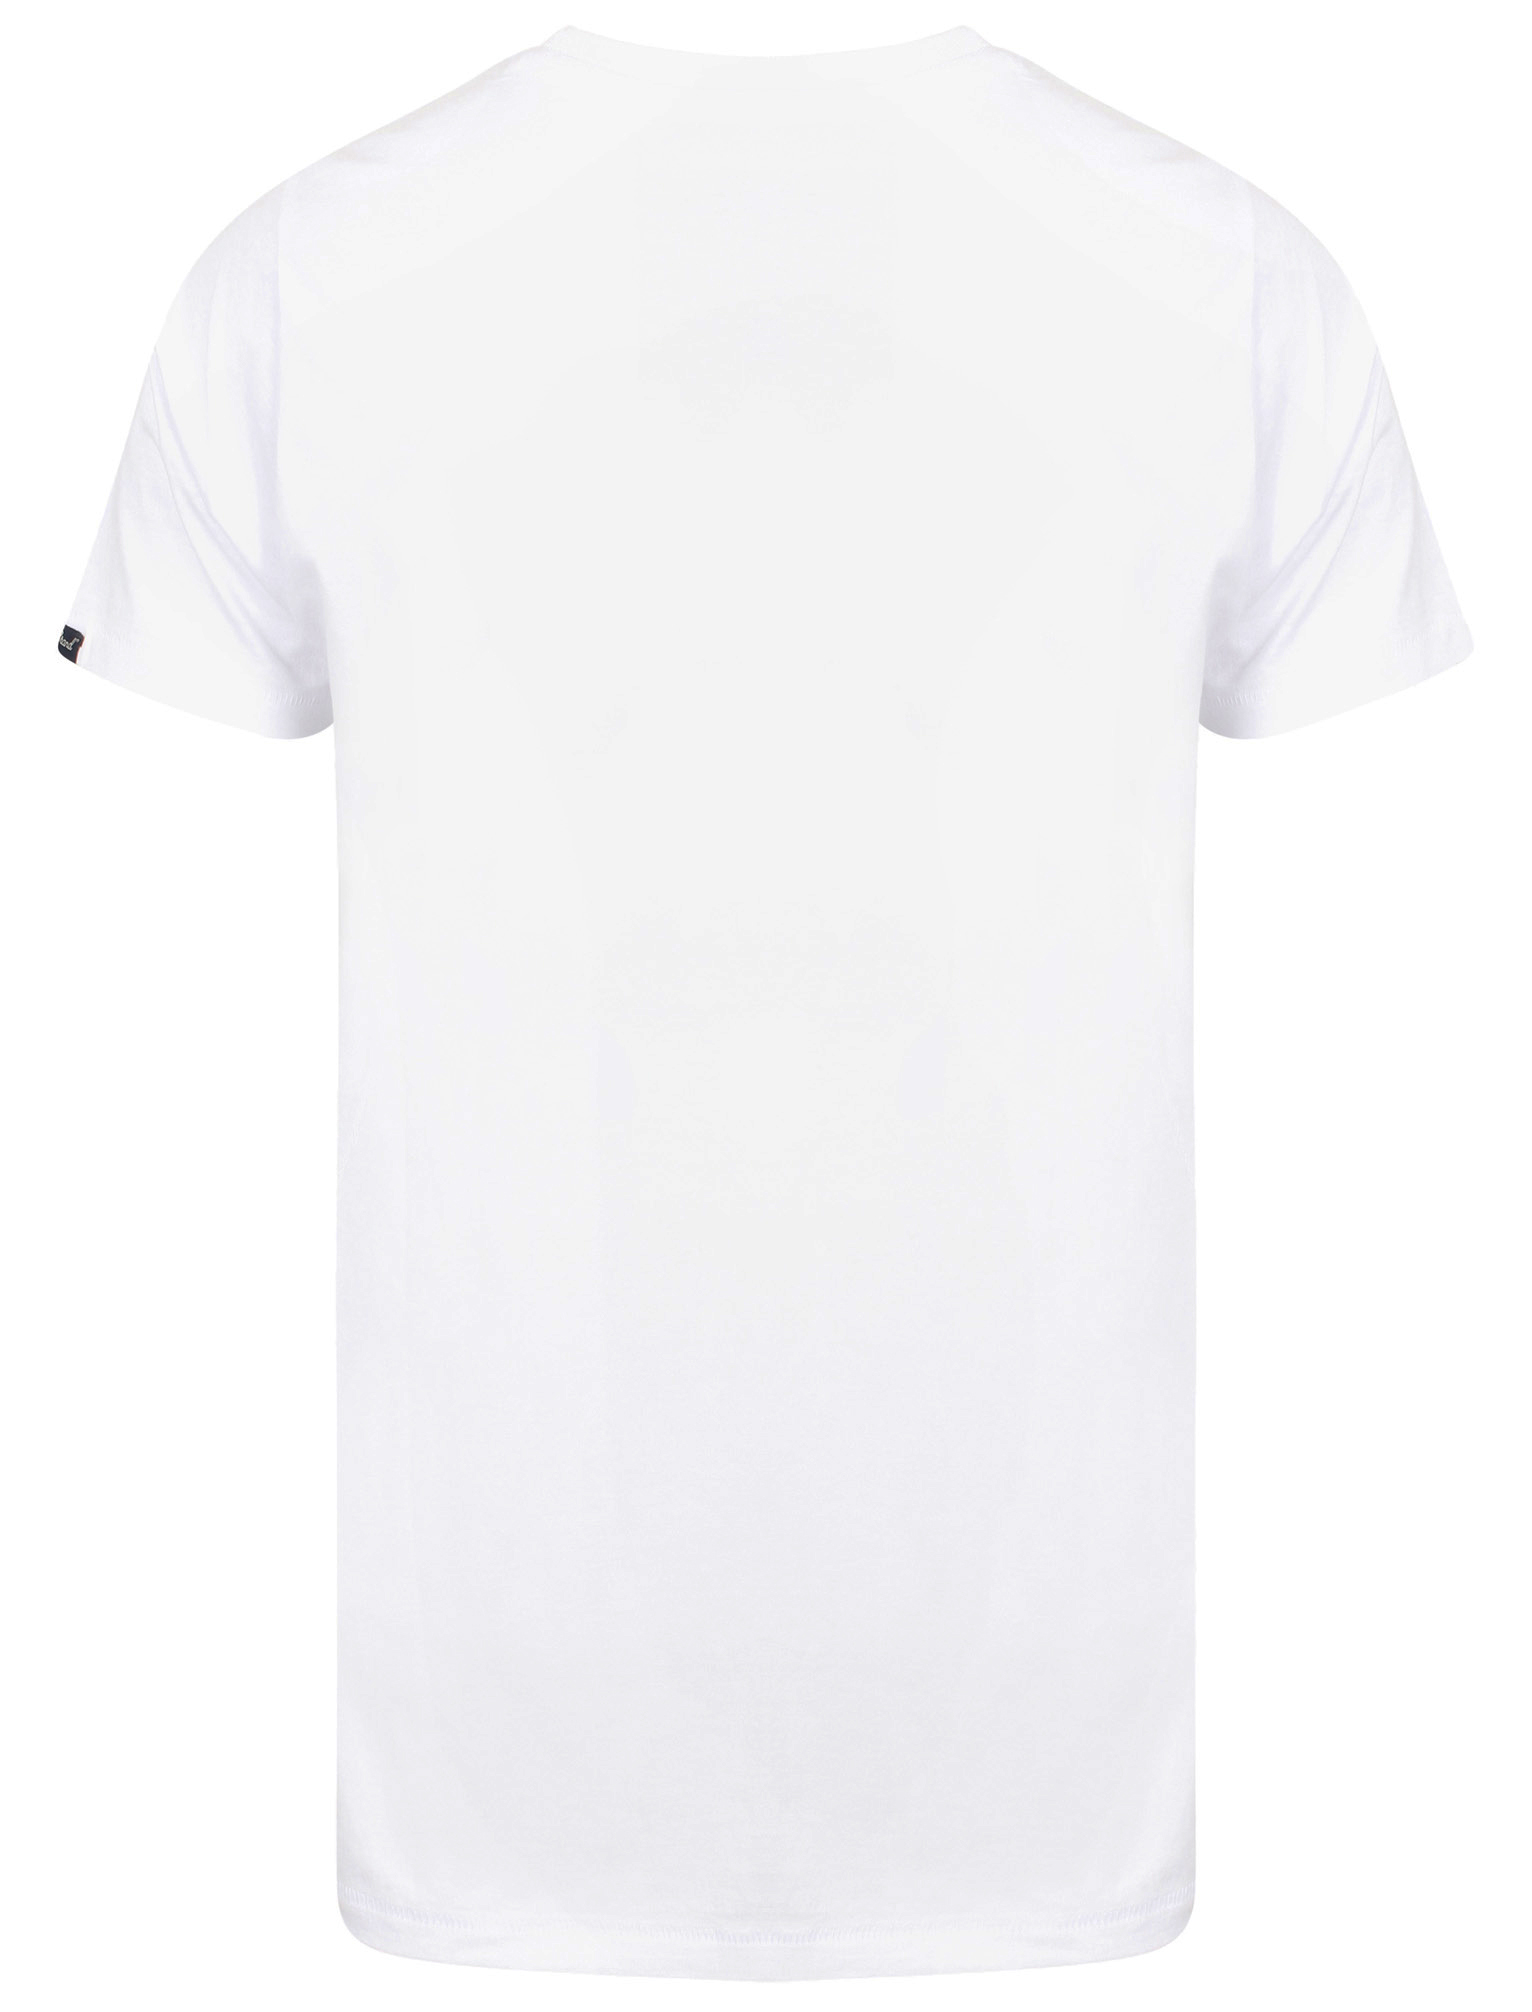 New-Mens-Tokyo-Laundry-Montecarlo-Crew-Neck-Cotton-Rich-Soft-T-Shirt-Size-S-XXL thumbnail 9